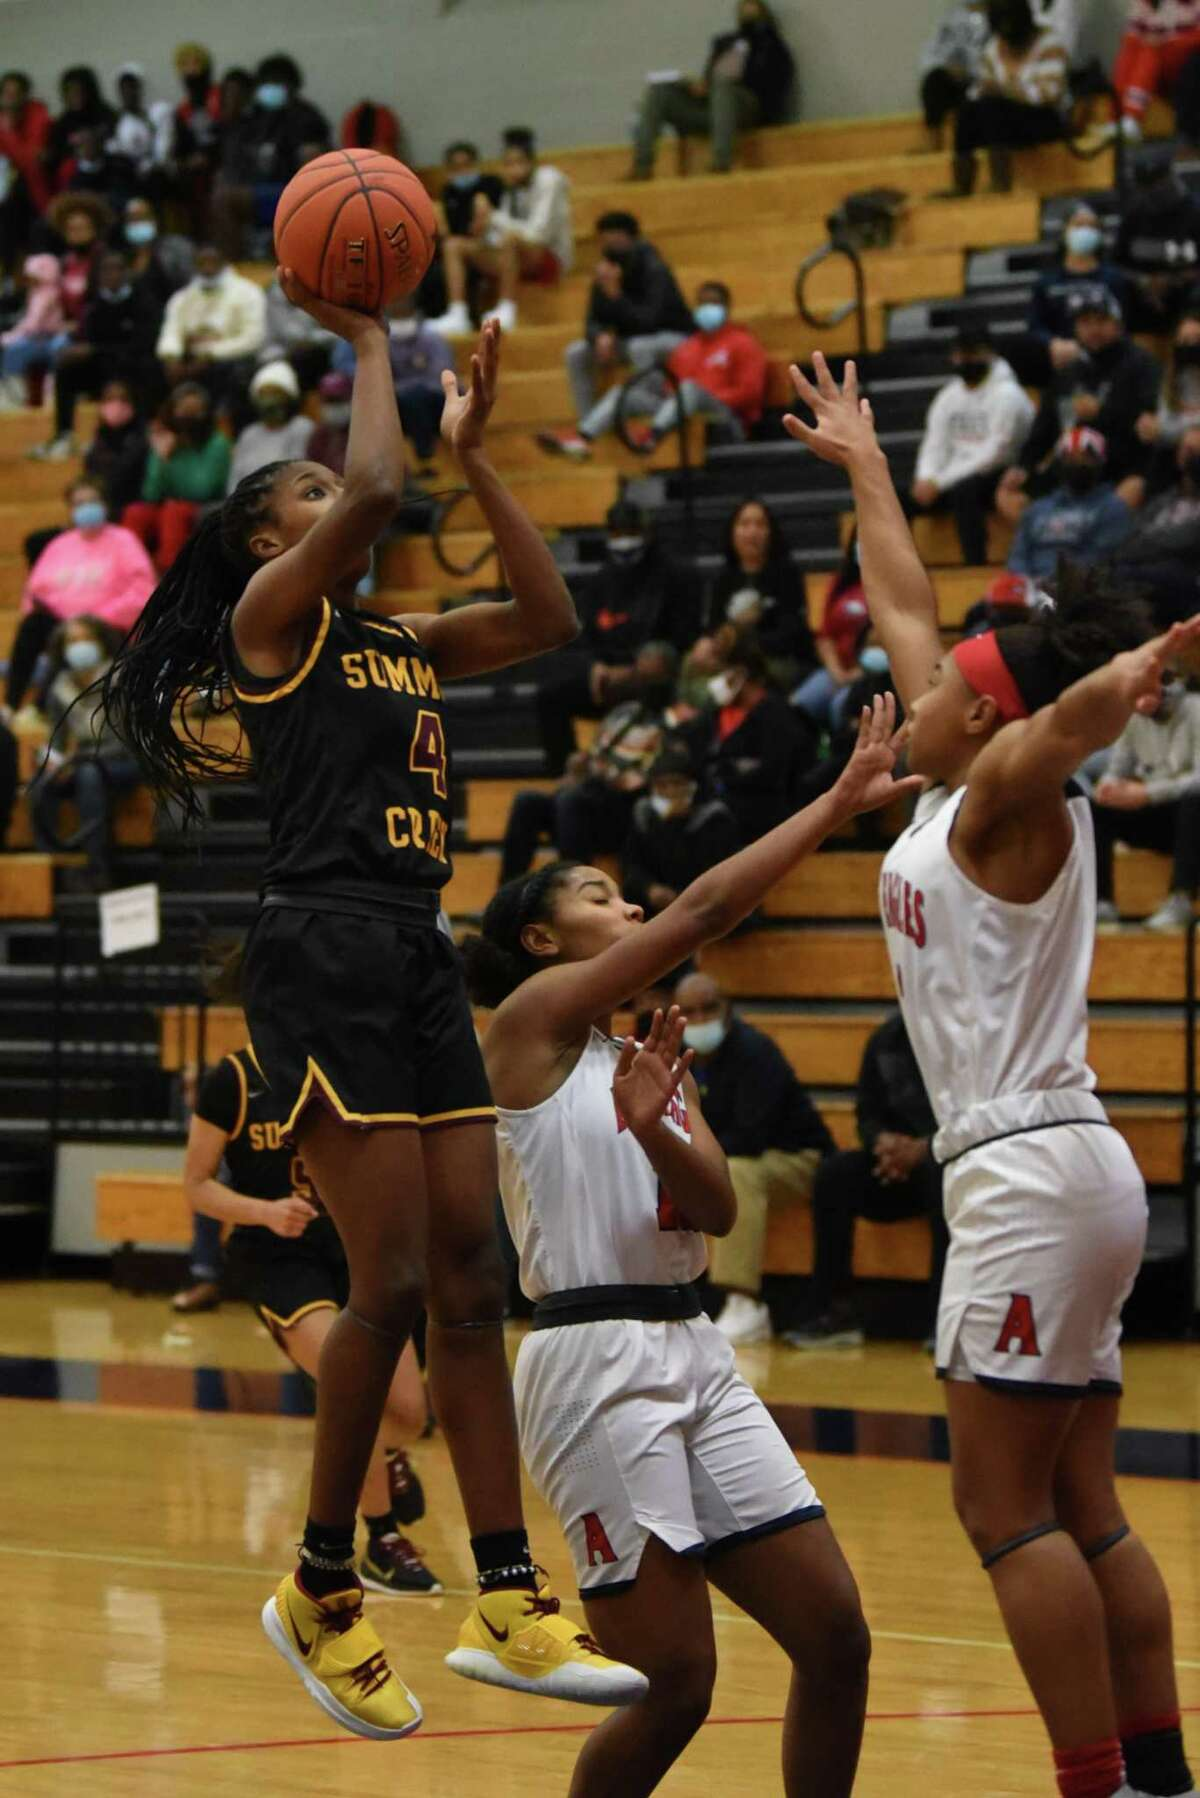 Summer Creek's Kaitlyn Duhon scored a game-high 14 points in the Lady Bulldogs' upset win over No. 20 Atascocita earlier this season.